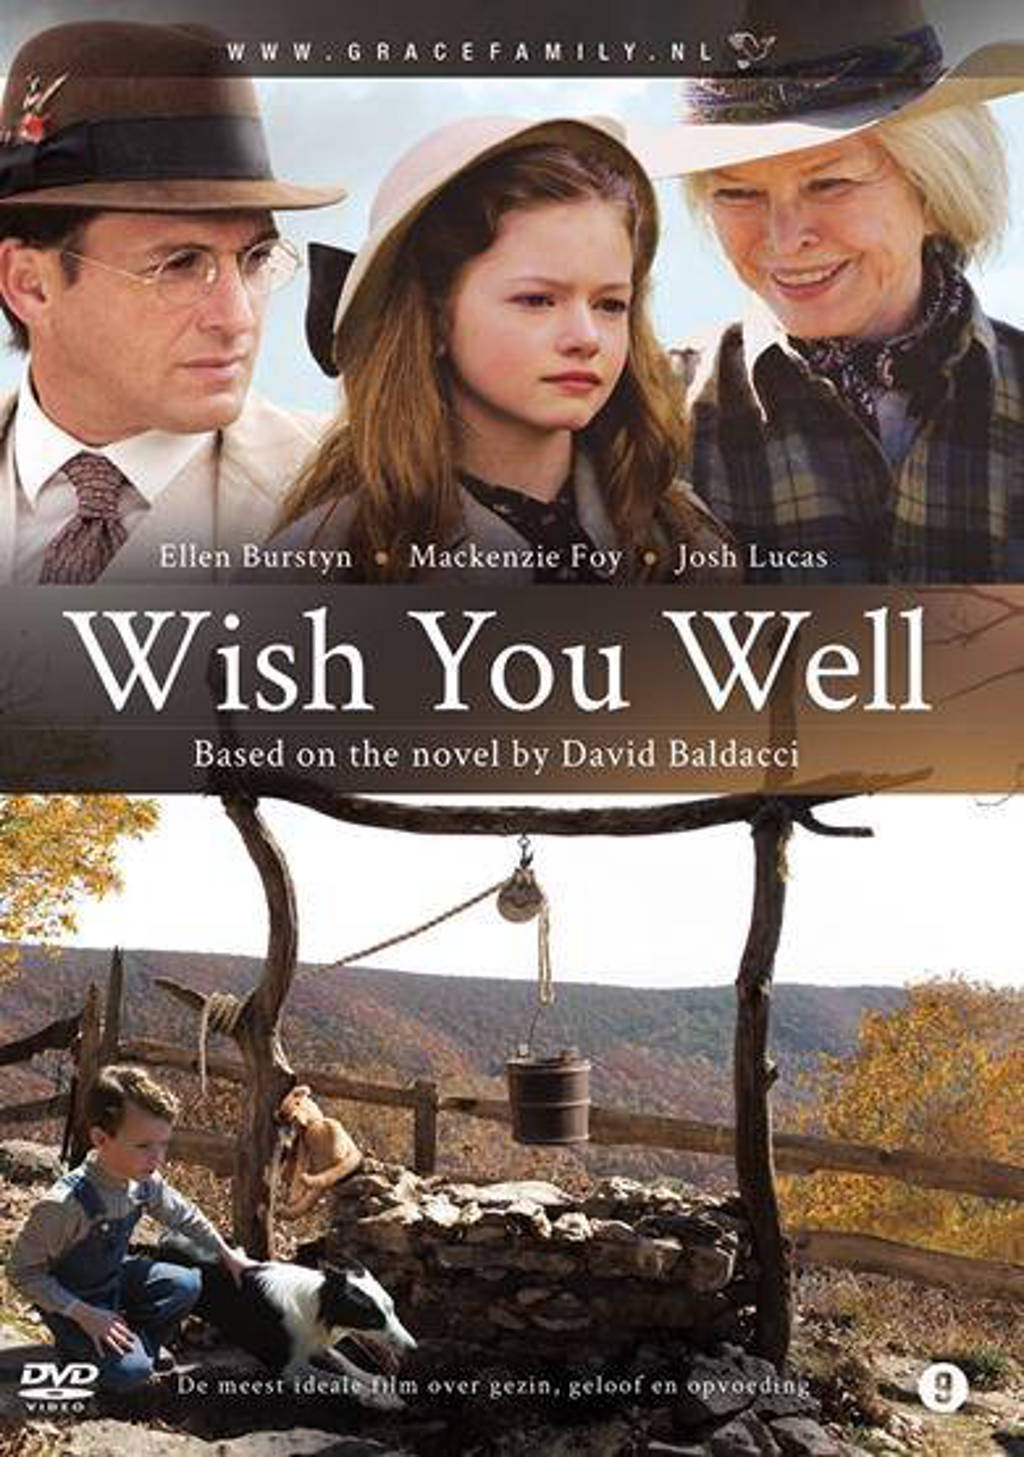 Wish you well (DVD)